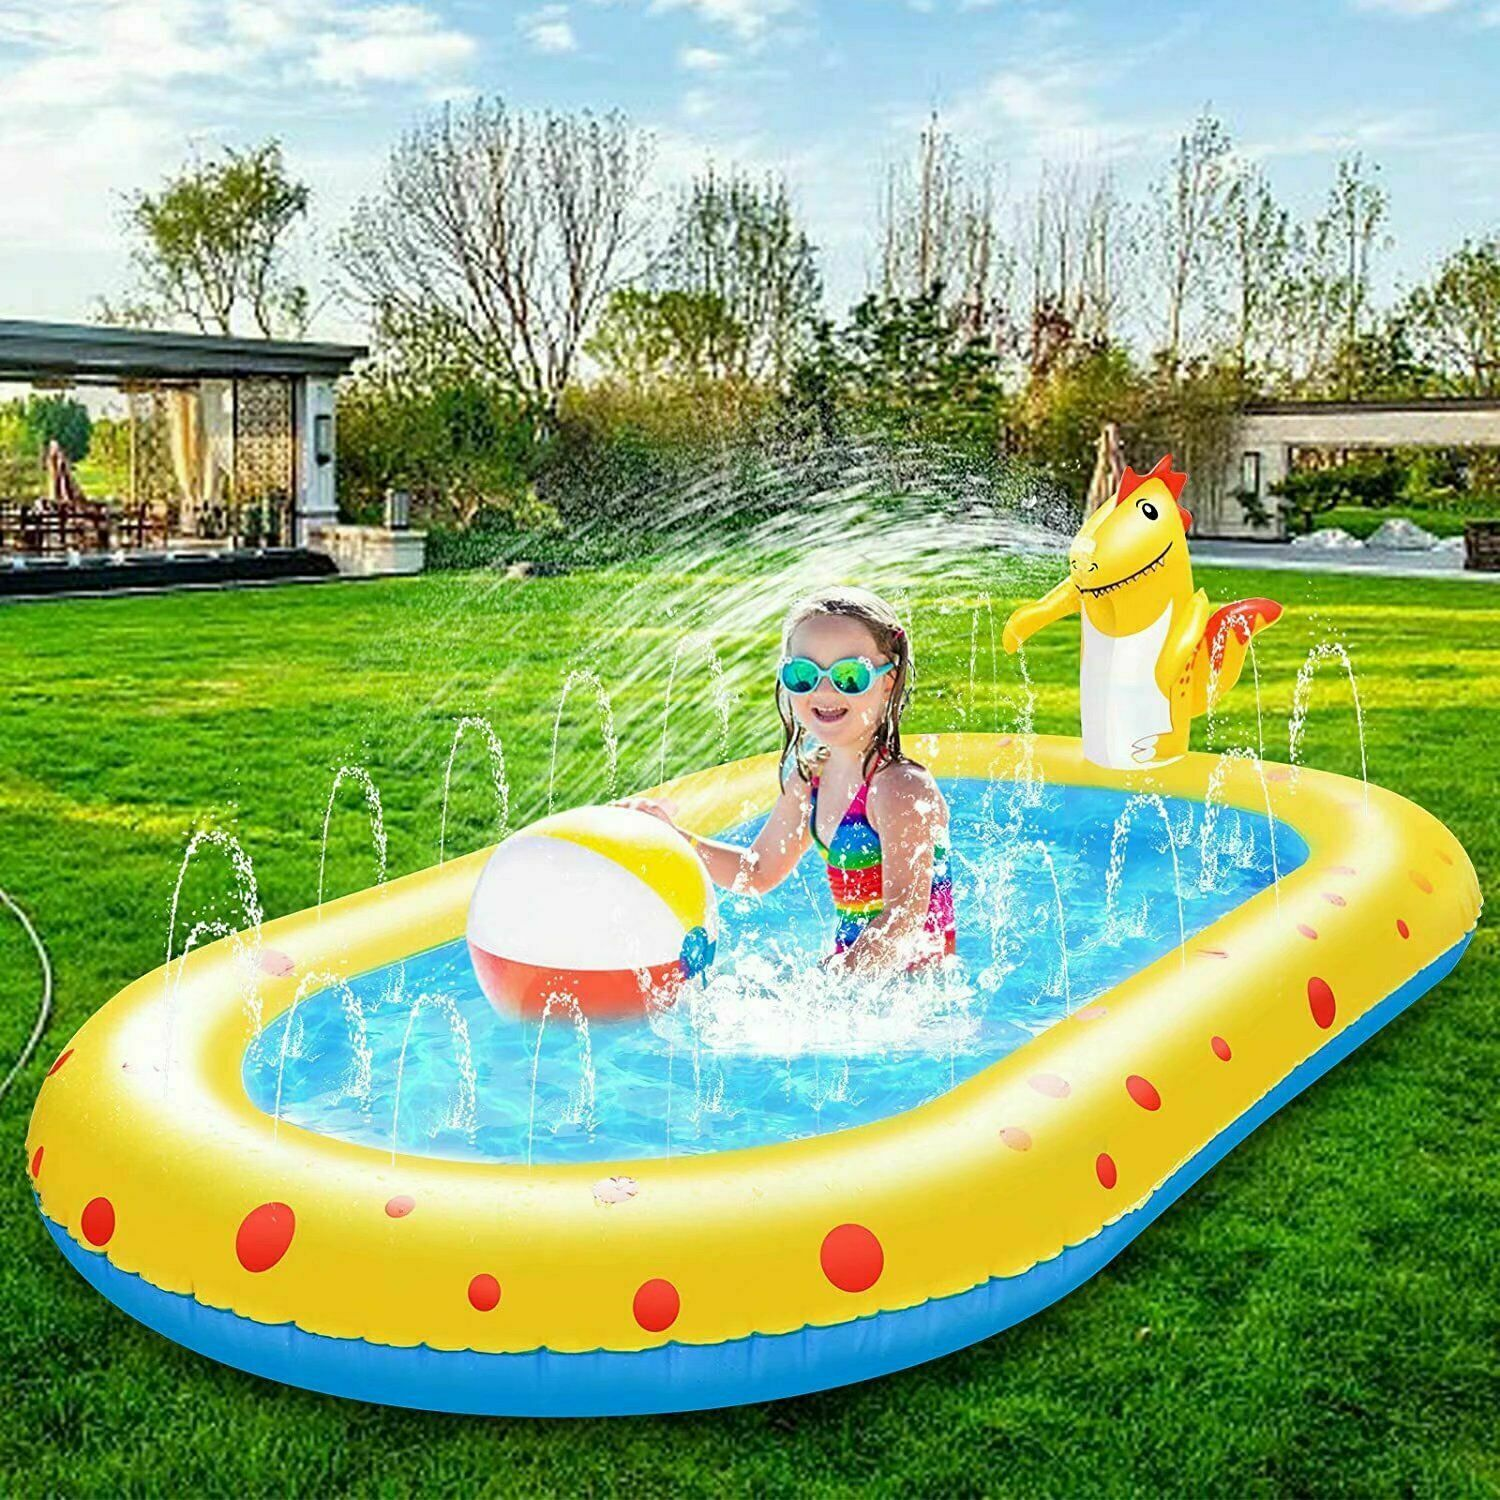 Inflatable Sprinkler Pool for Kids 3in1 Baby Pool Outdoor SplashPad for Toddlers